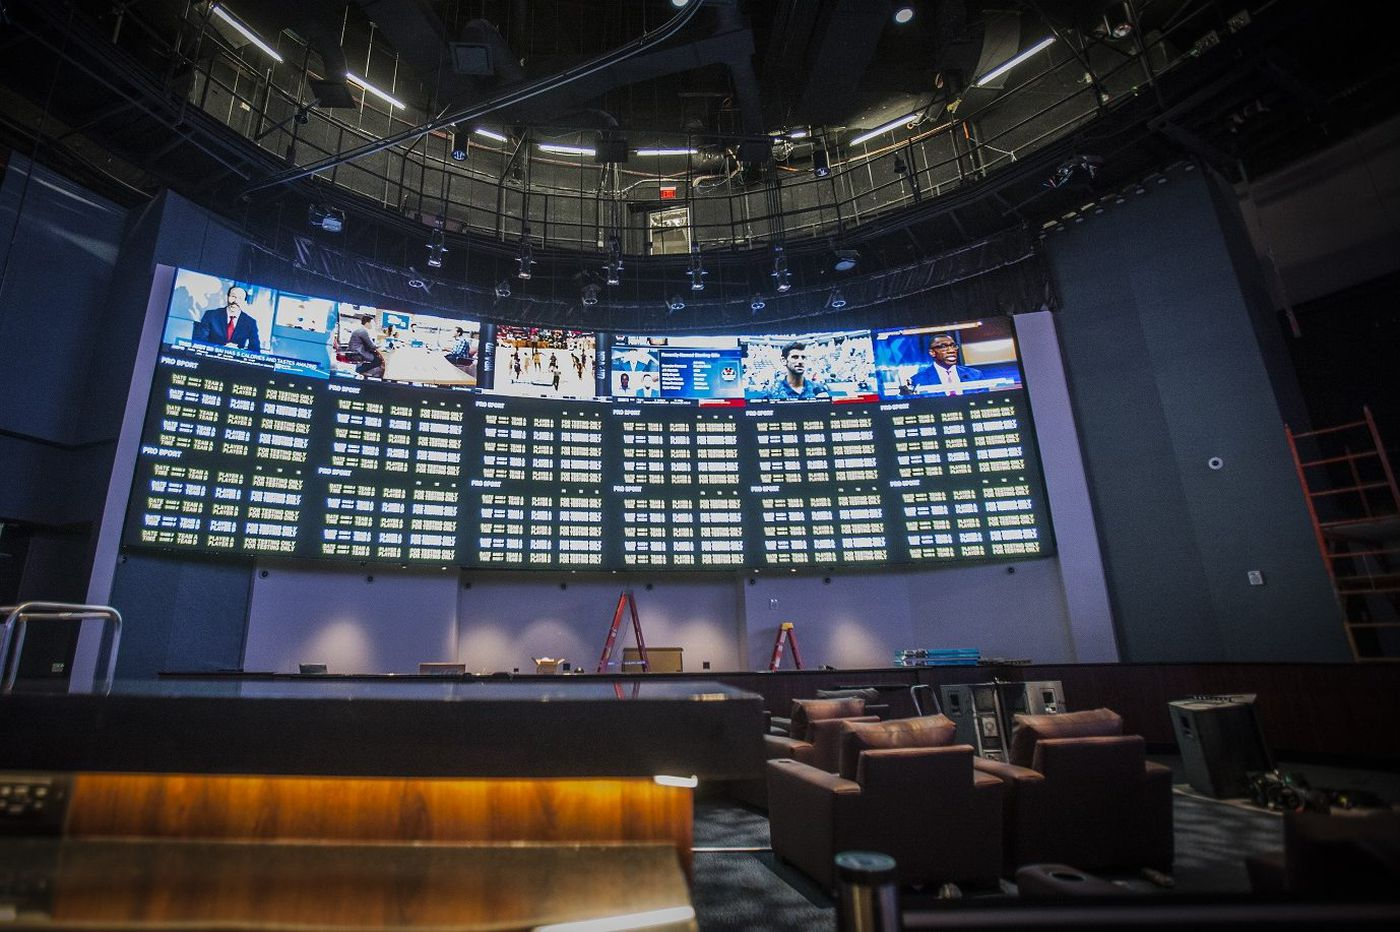 Scouting the Atlantic City sportsbooks ahead of NFL Week 1